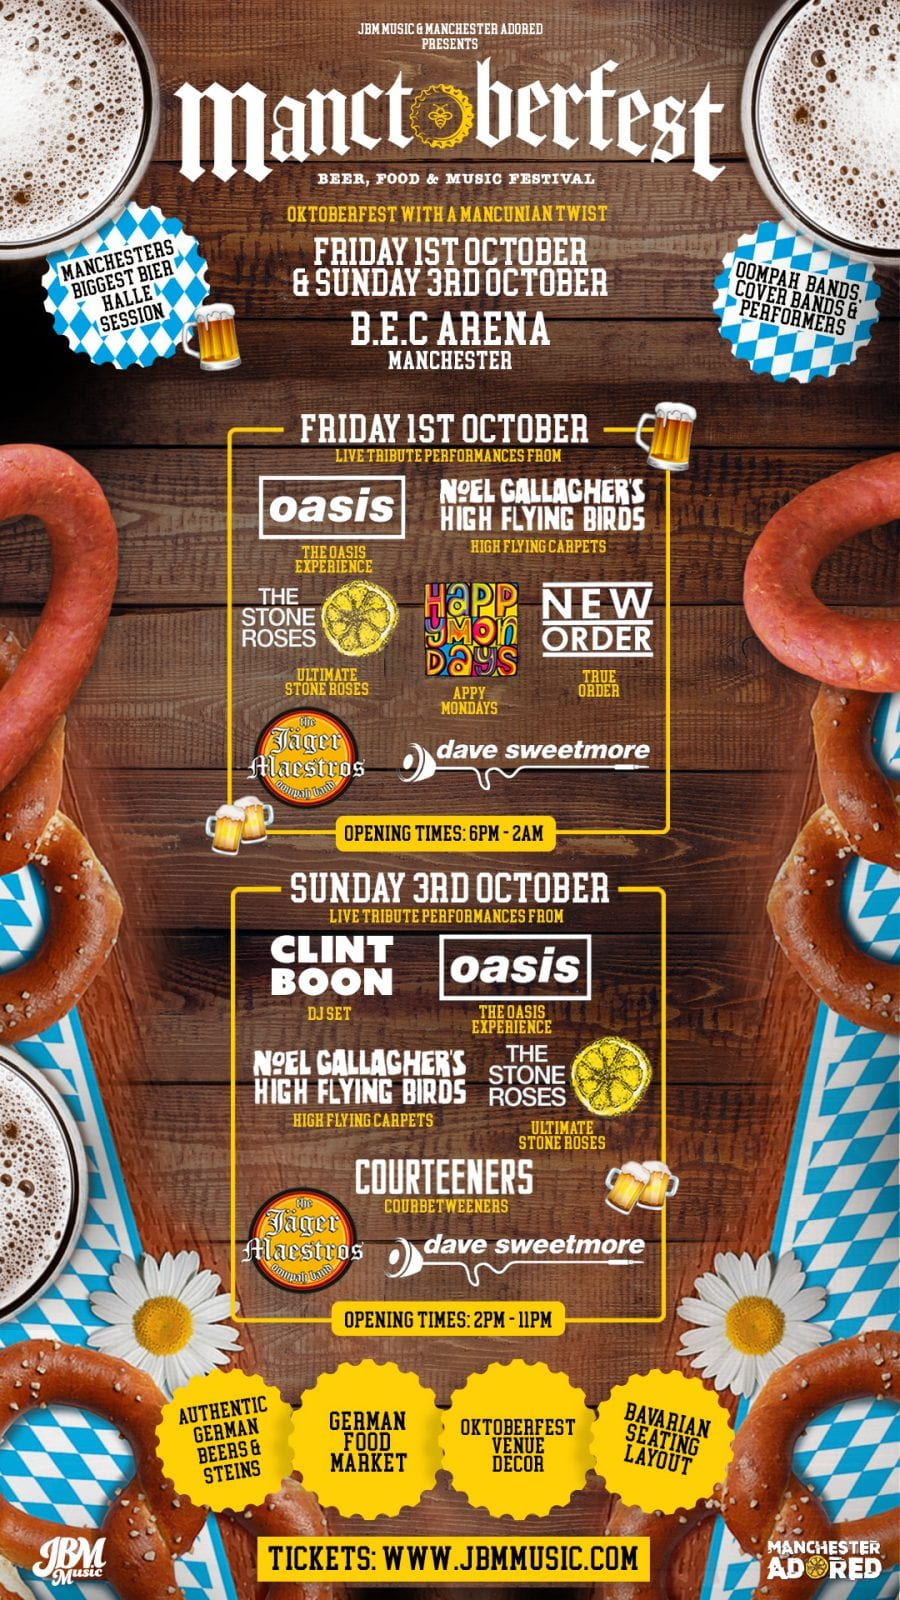 Munich comes to Manchester for 'Manctoberfest' event this autumn, The Manc